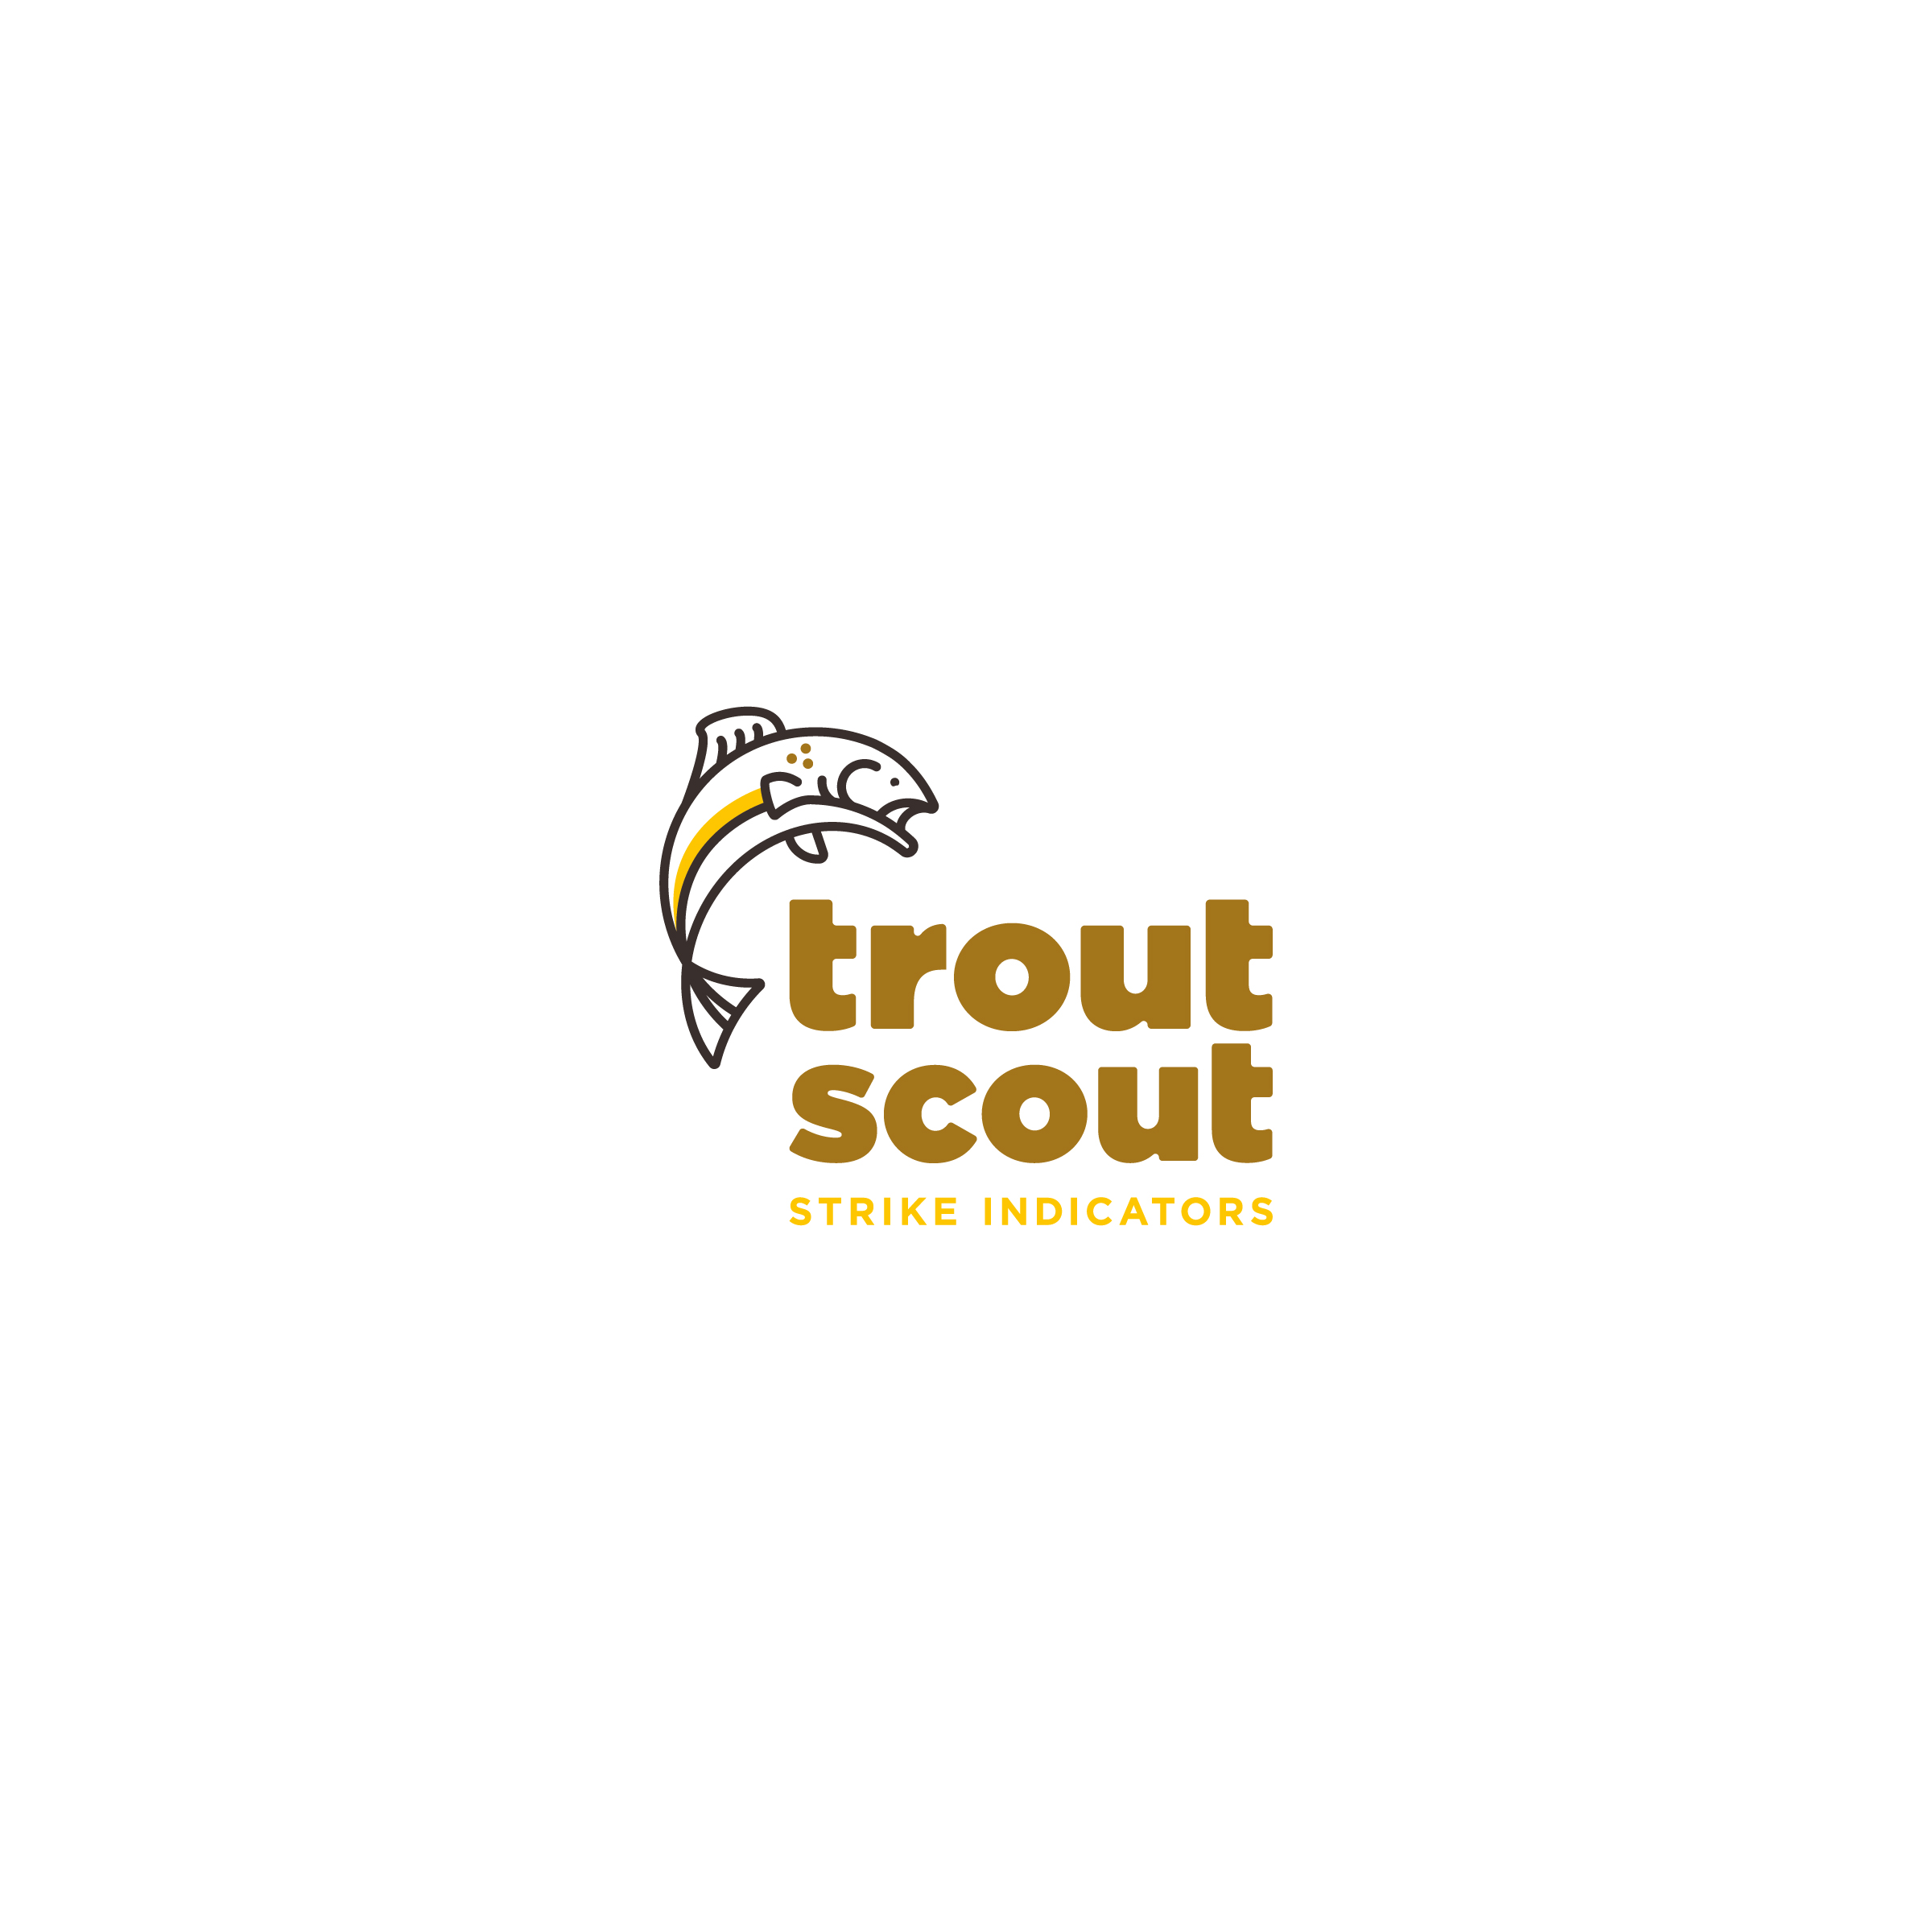 TroutScout_3clrBrown_Vrt.jpg